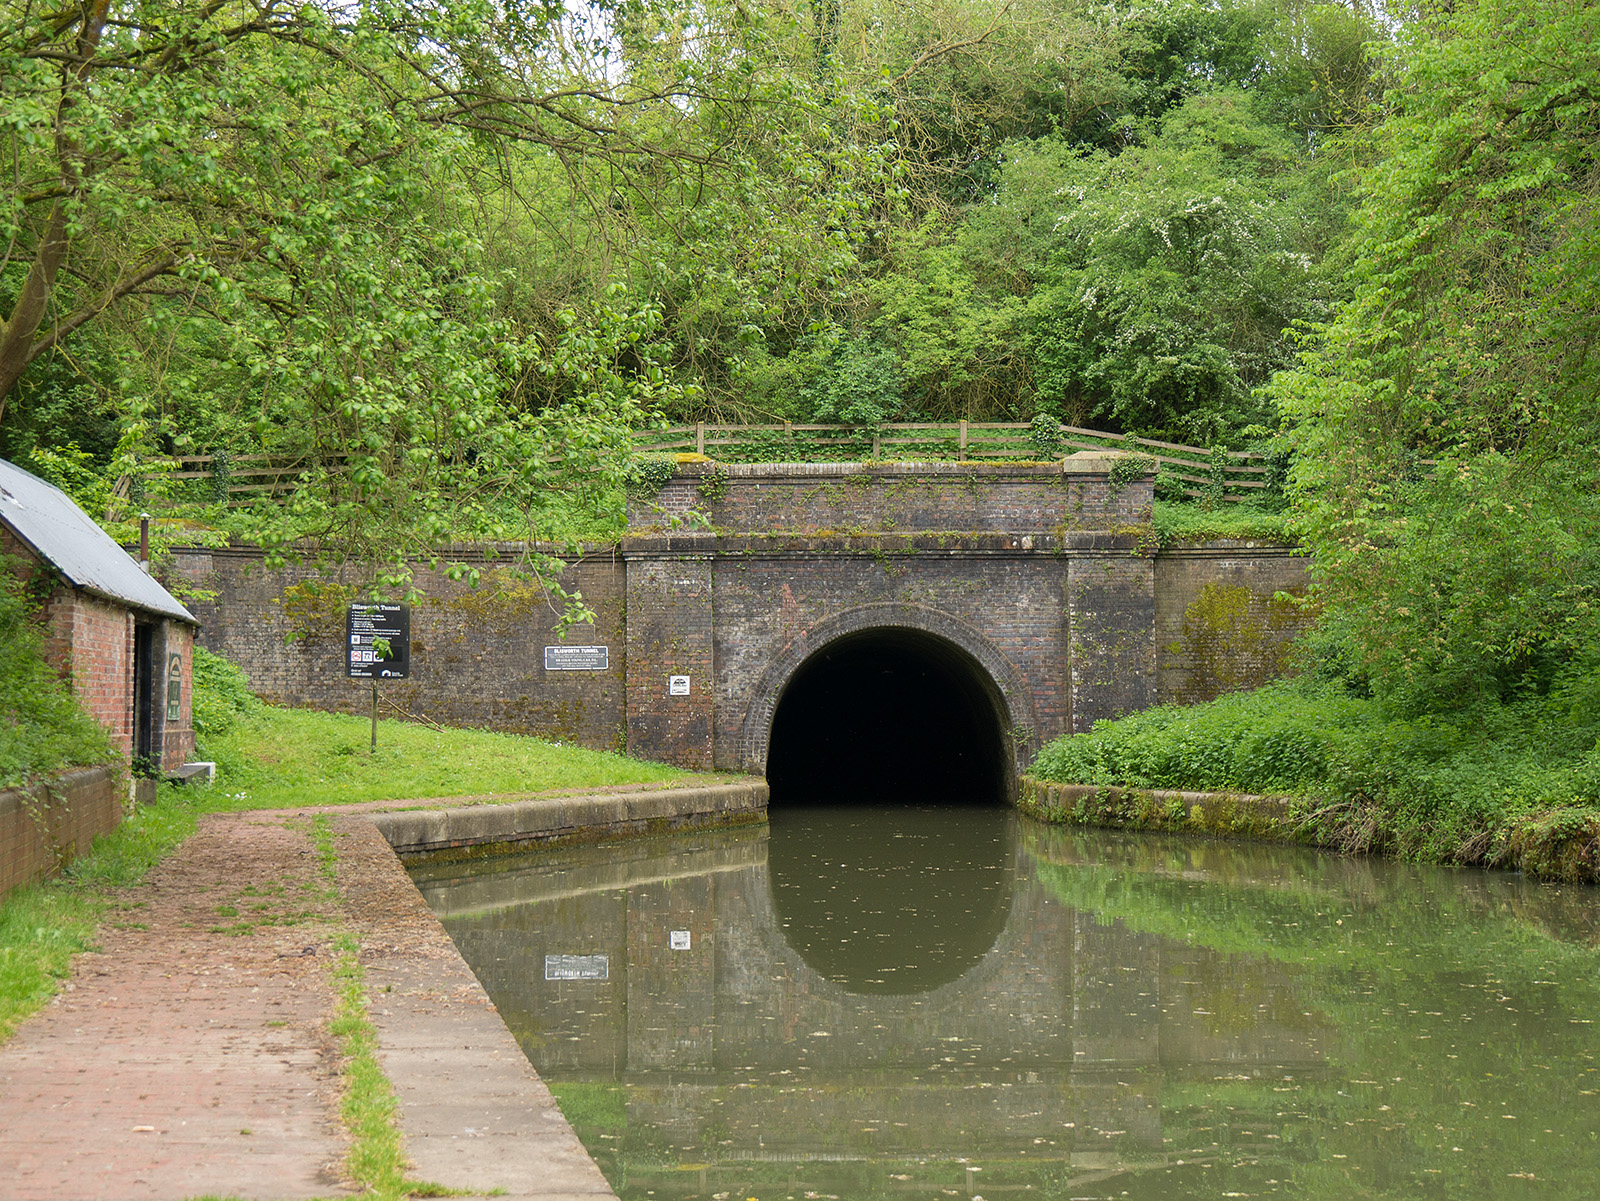 Looking back to the northern entrance to Blissworth tunnel